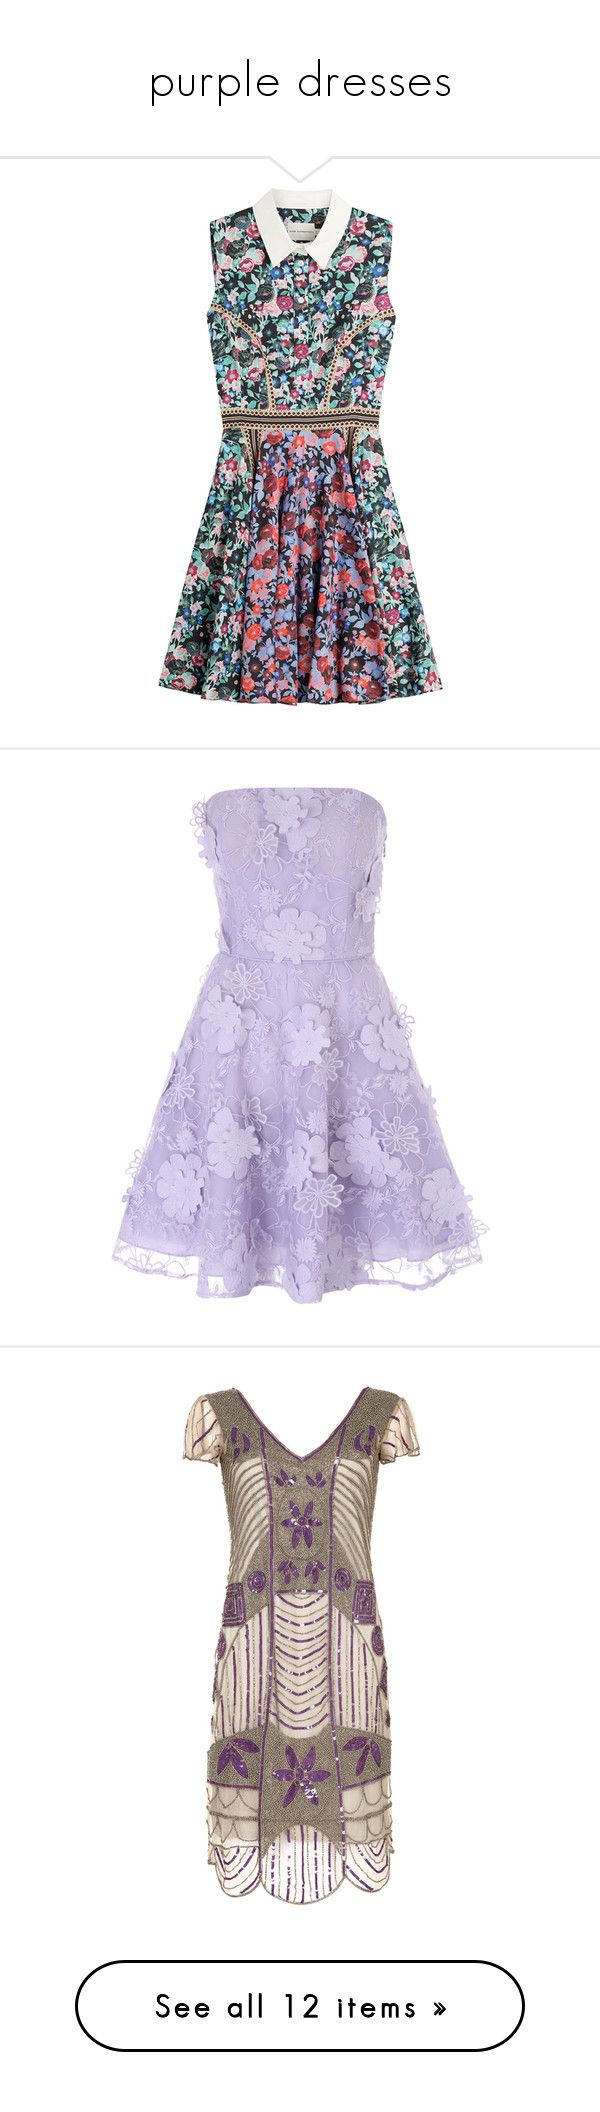 """purple dresses"" by besspredely-da on Polyvore featuring dresses, vestidos, платья, robe, short dresses, florals, scalloped dress, t-shirt dresses, print dresses и retro dresses"